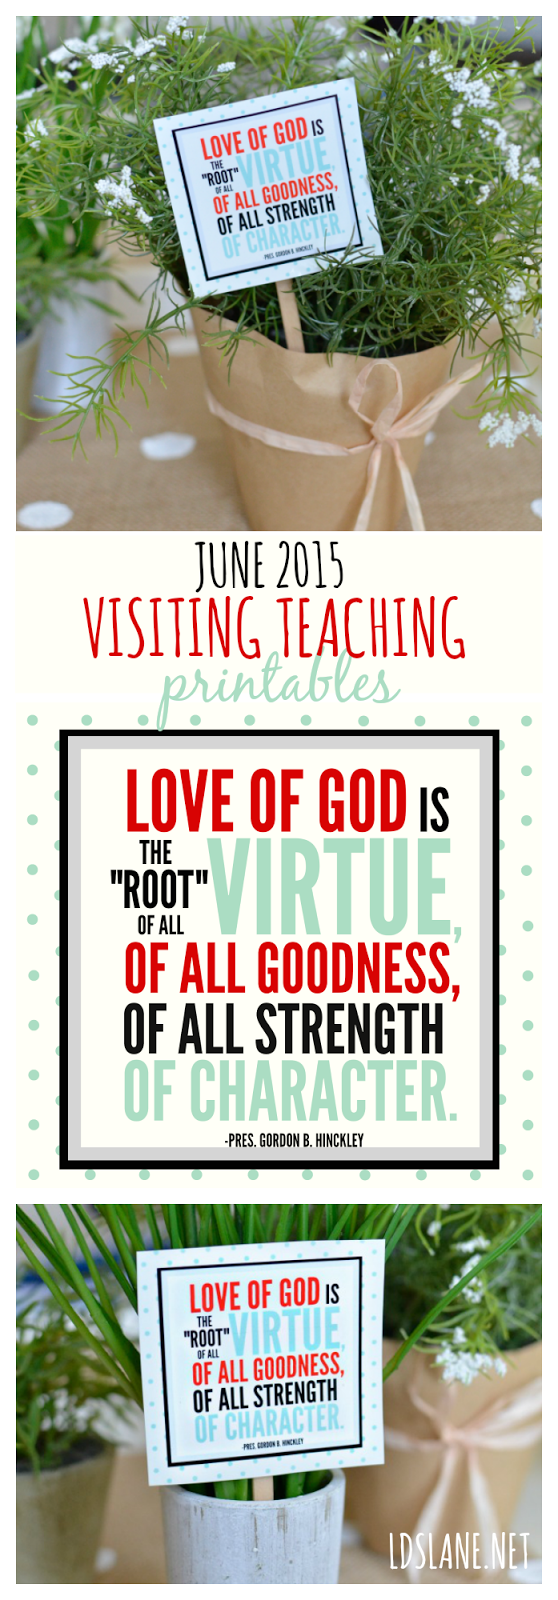 June 2015 Visiting Teaching Printables - ldslane.net